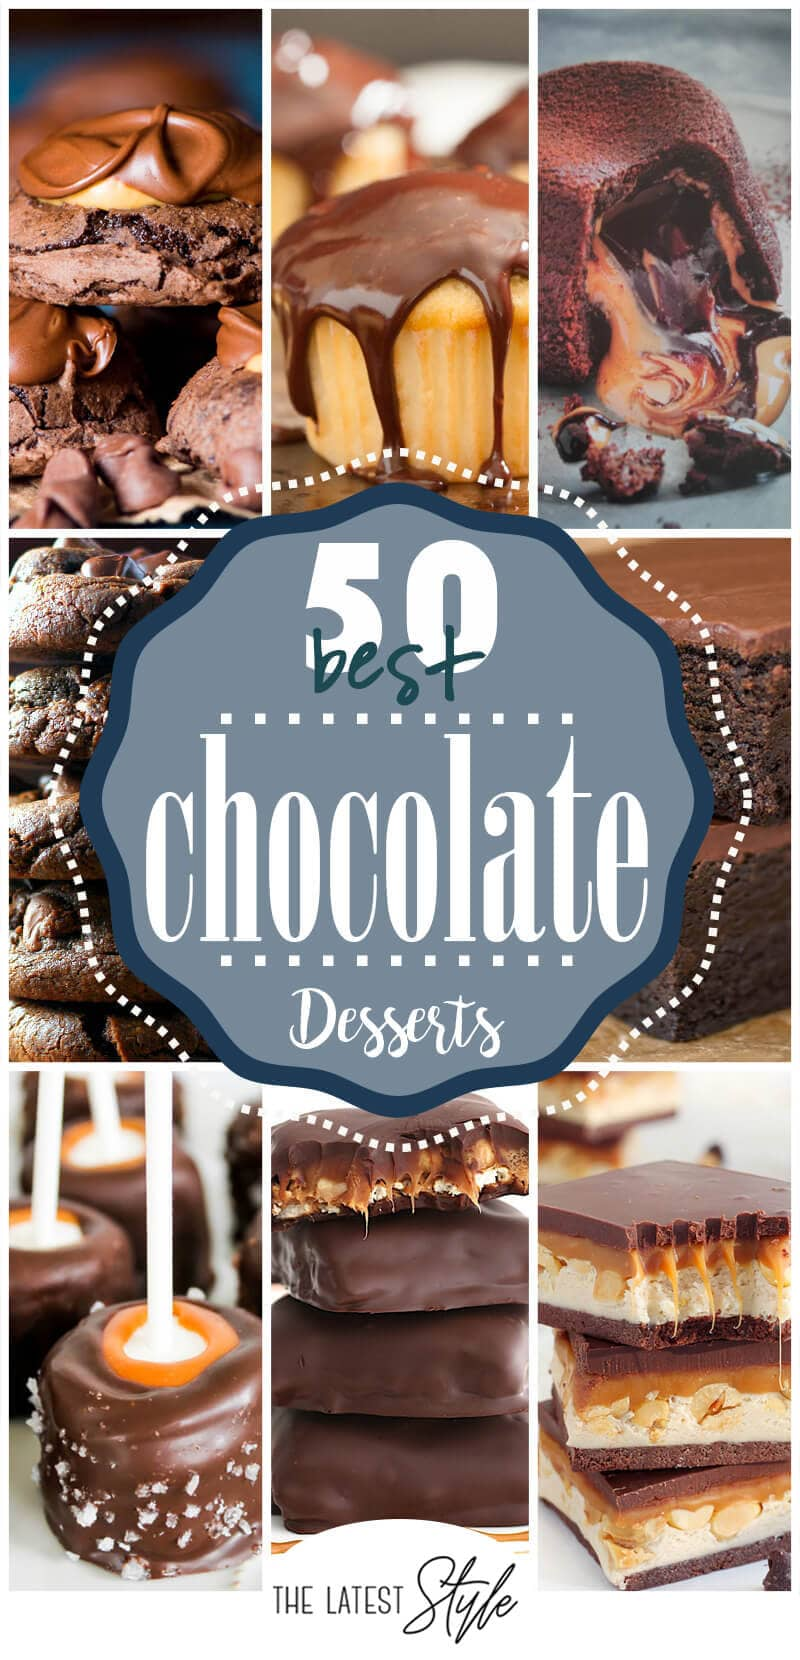 50 Heavenly Chocolate Dessert Recipes that will Become Your New Favorites